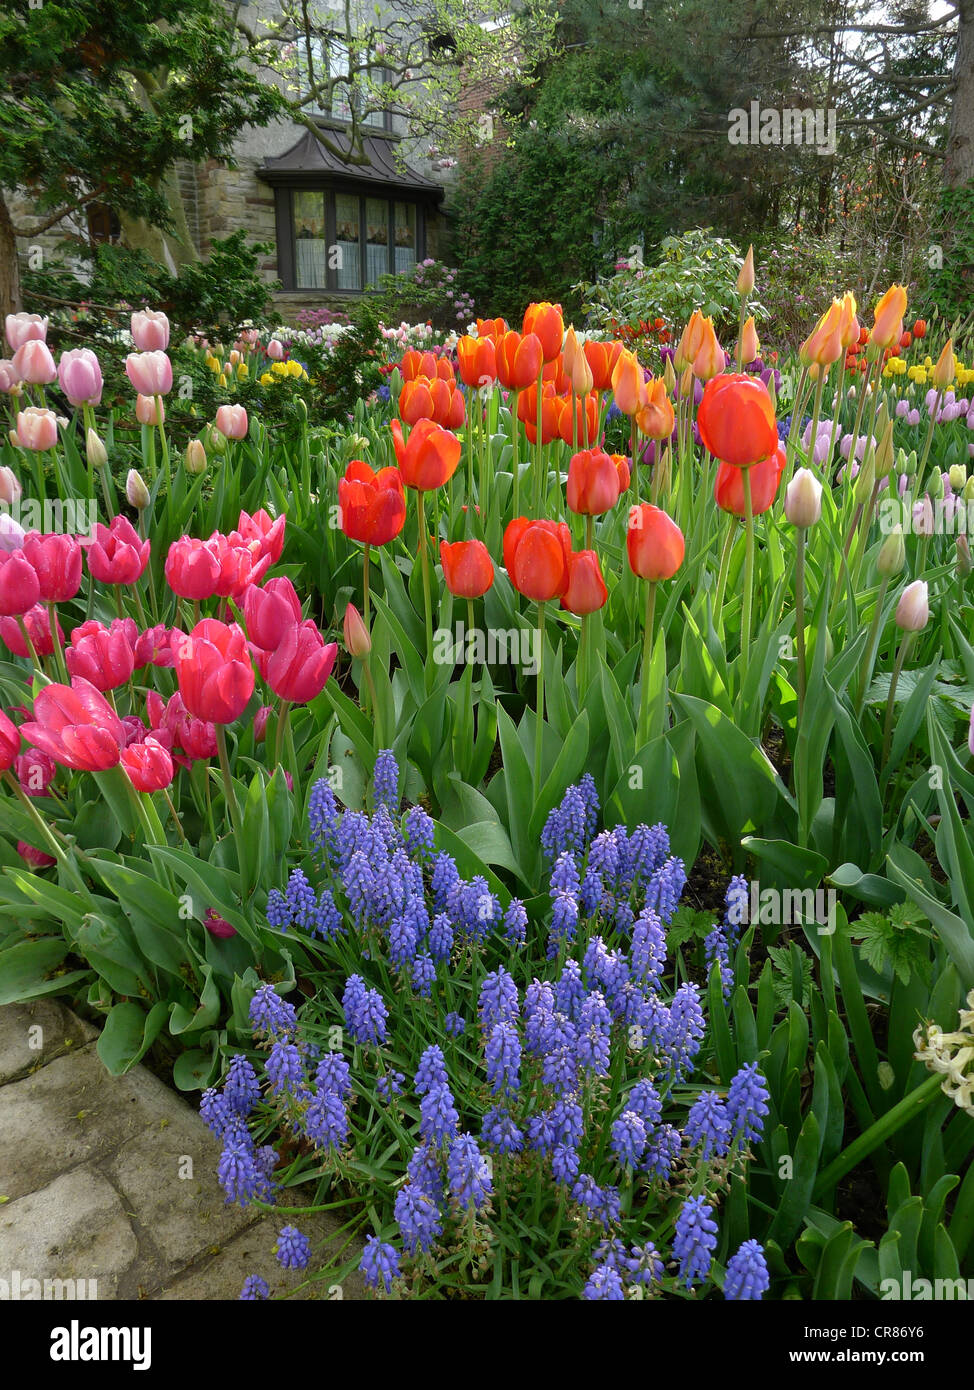 Front yard with spring flowers - Stock Image